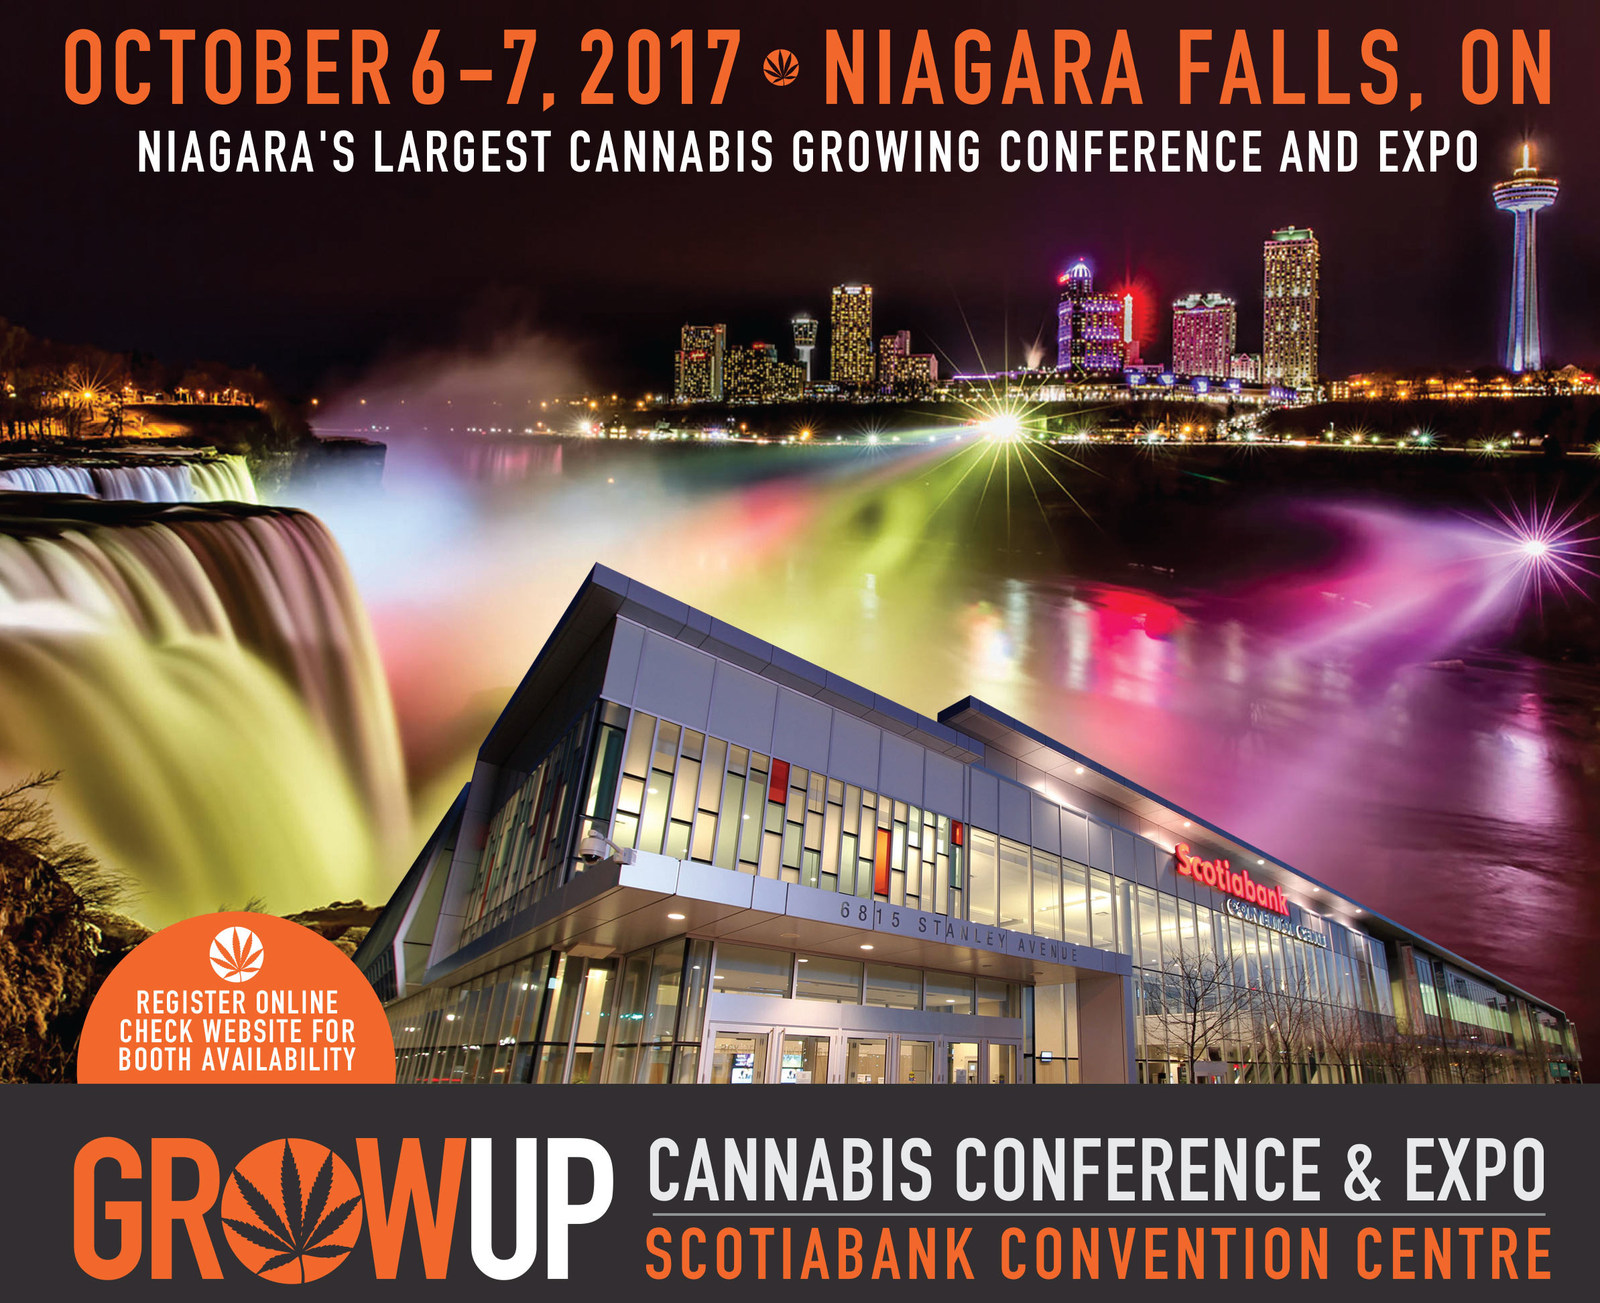 Grow Up Conference and Expo-Time to Grow Up- Canada